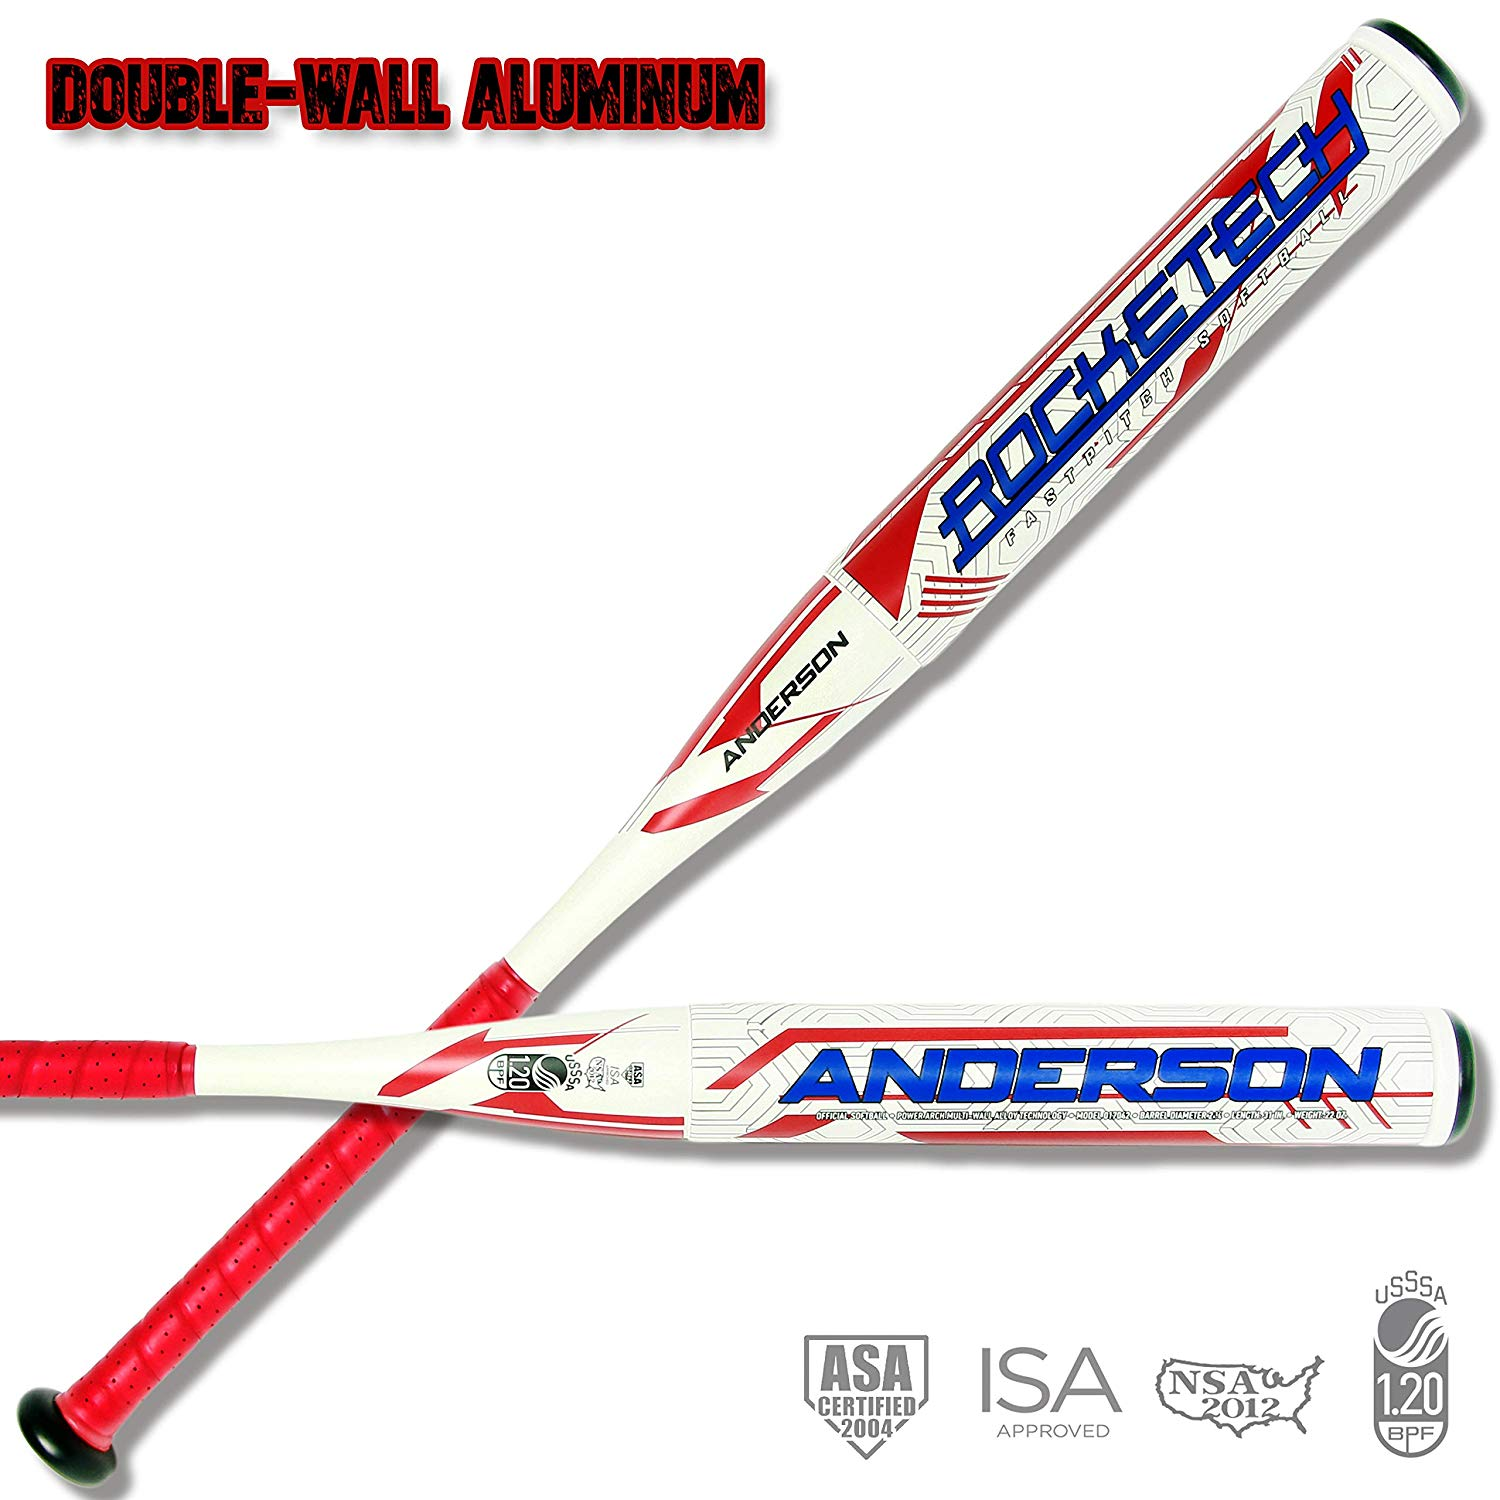 anderson-rocketech-9-double-wall-fastpitch-softball-bat-33-inch-24-oz 017042-3324 Anderson 874147009536 `-9 Drop Weight End Loaded for more POWER guaranteed! Approved By